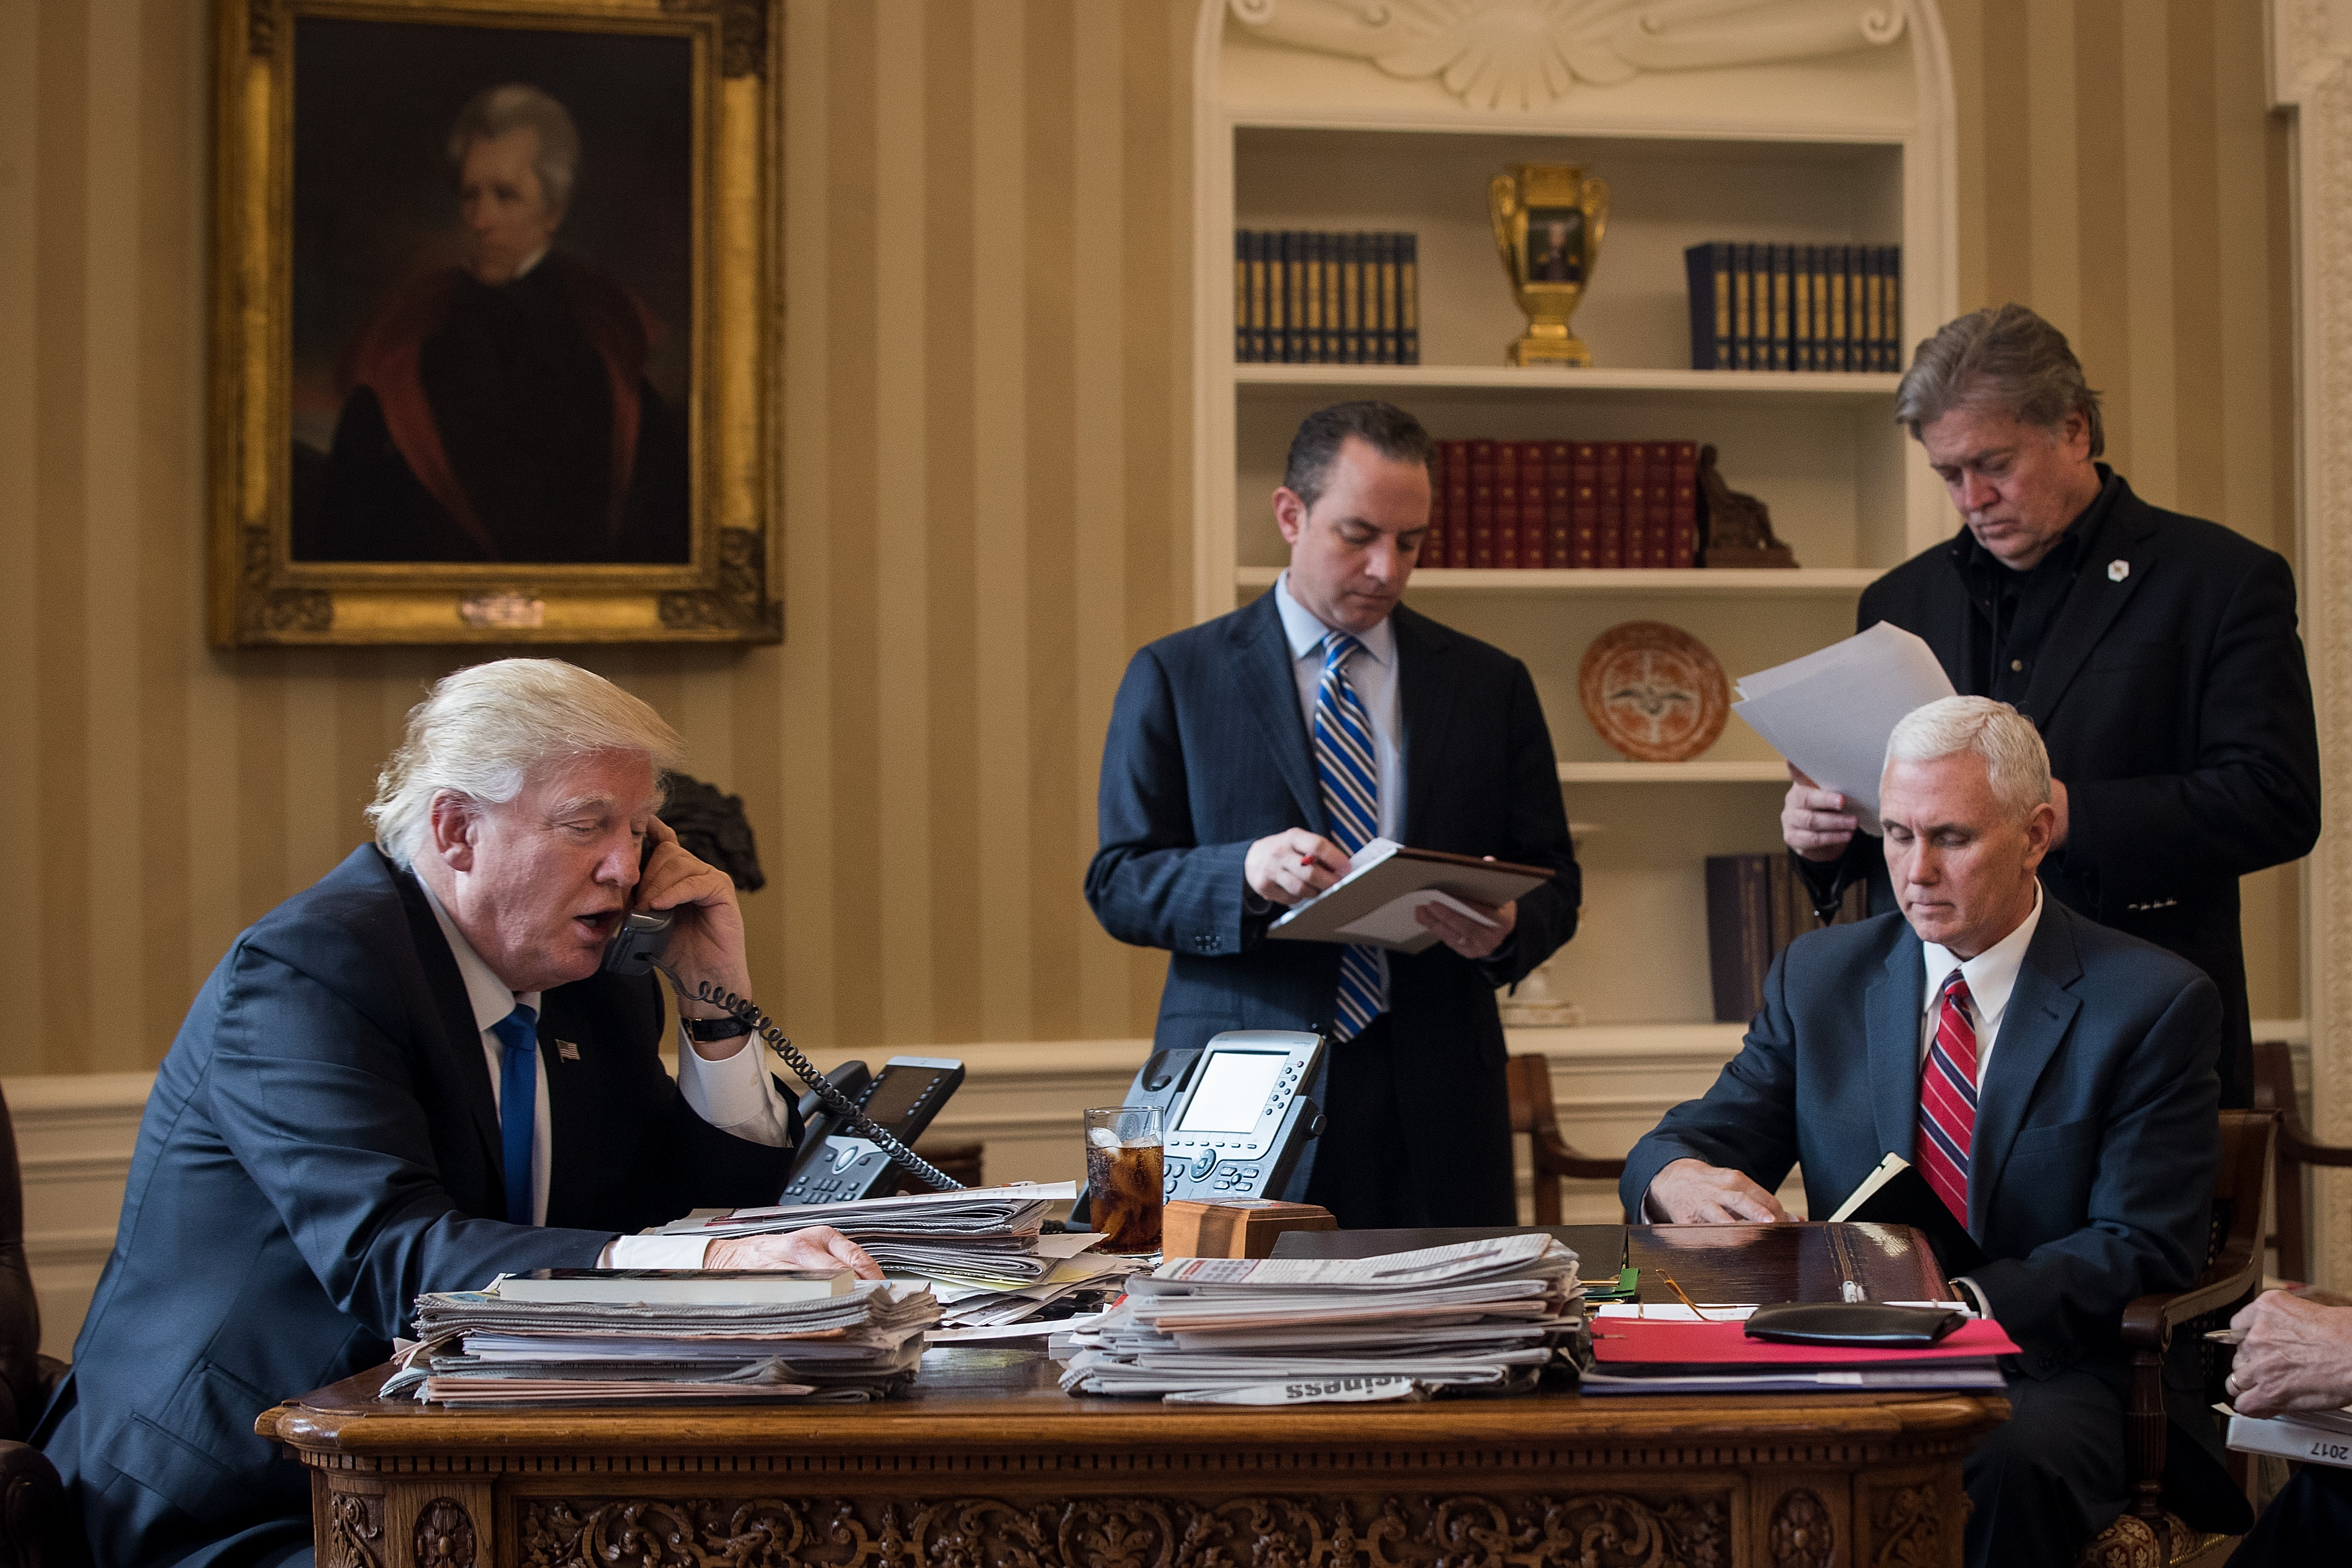 President Donald Trump speaks on the phone with Russian President Vladimir Putin in the Oval Office of the White House, Jan. 28, 2017. (Getty Images)